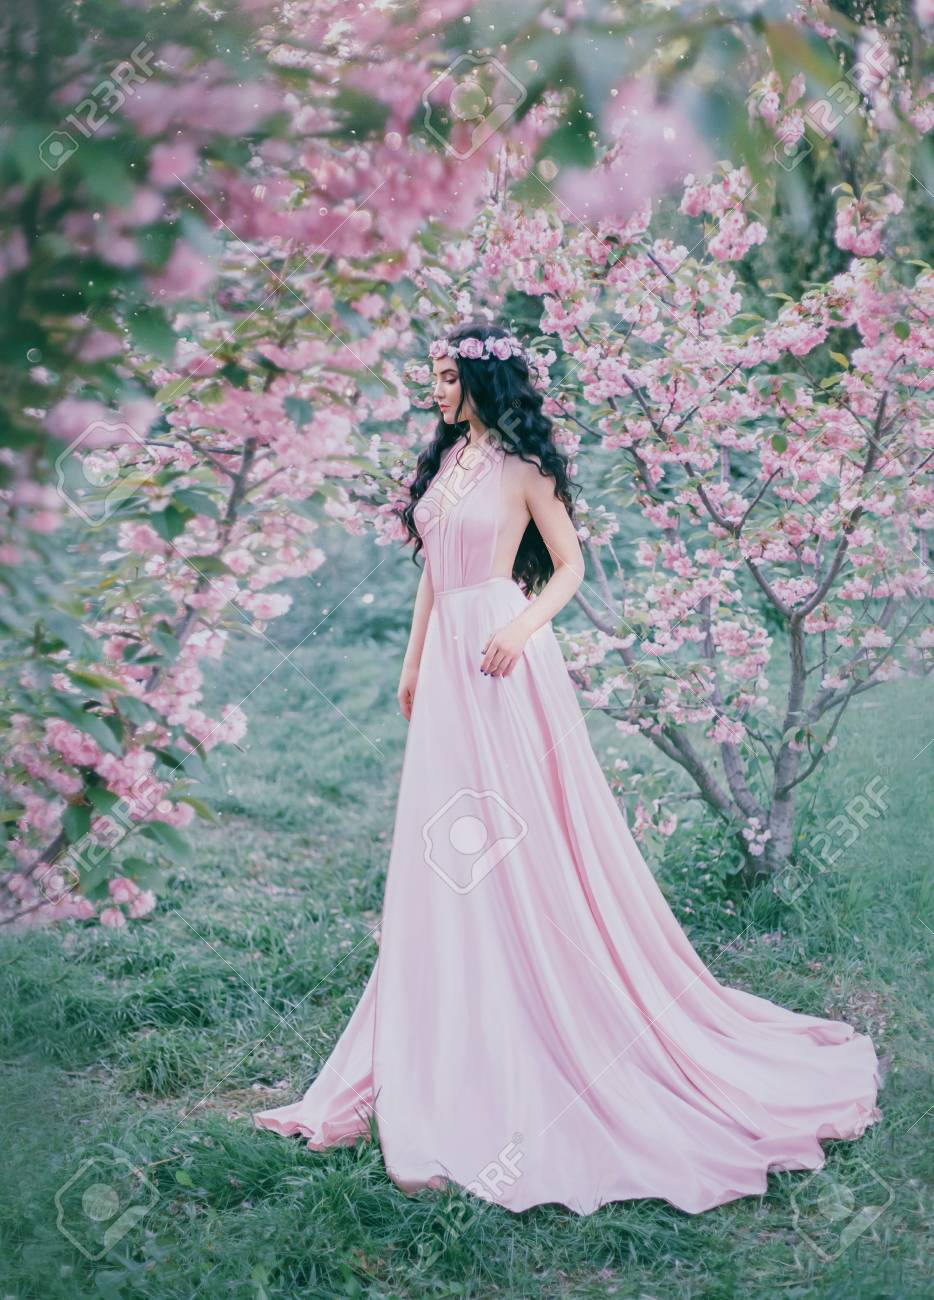 Incredible Gentle Elf In A Luxurious Gently Pink Dress Strolls